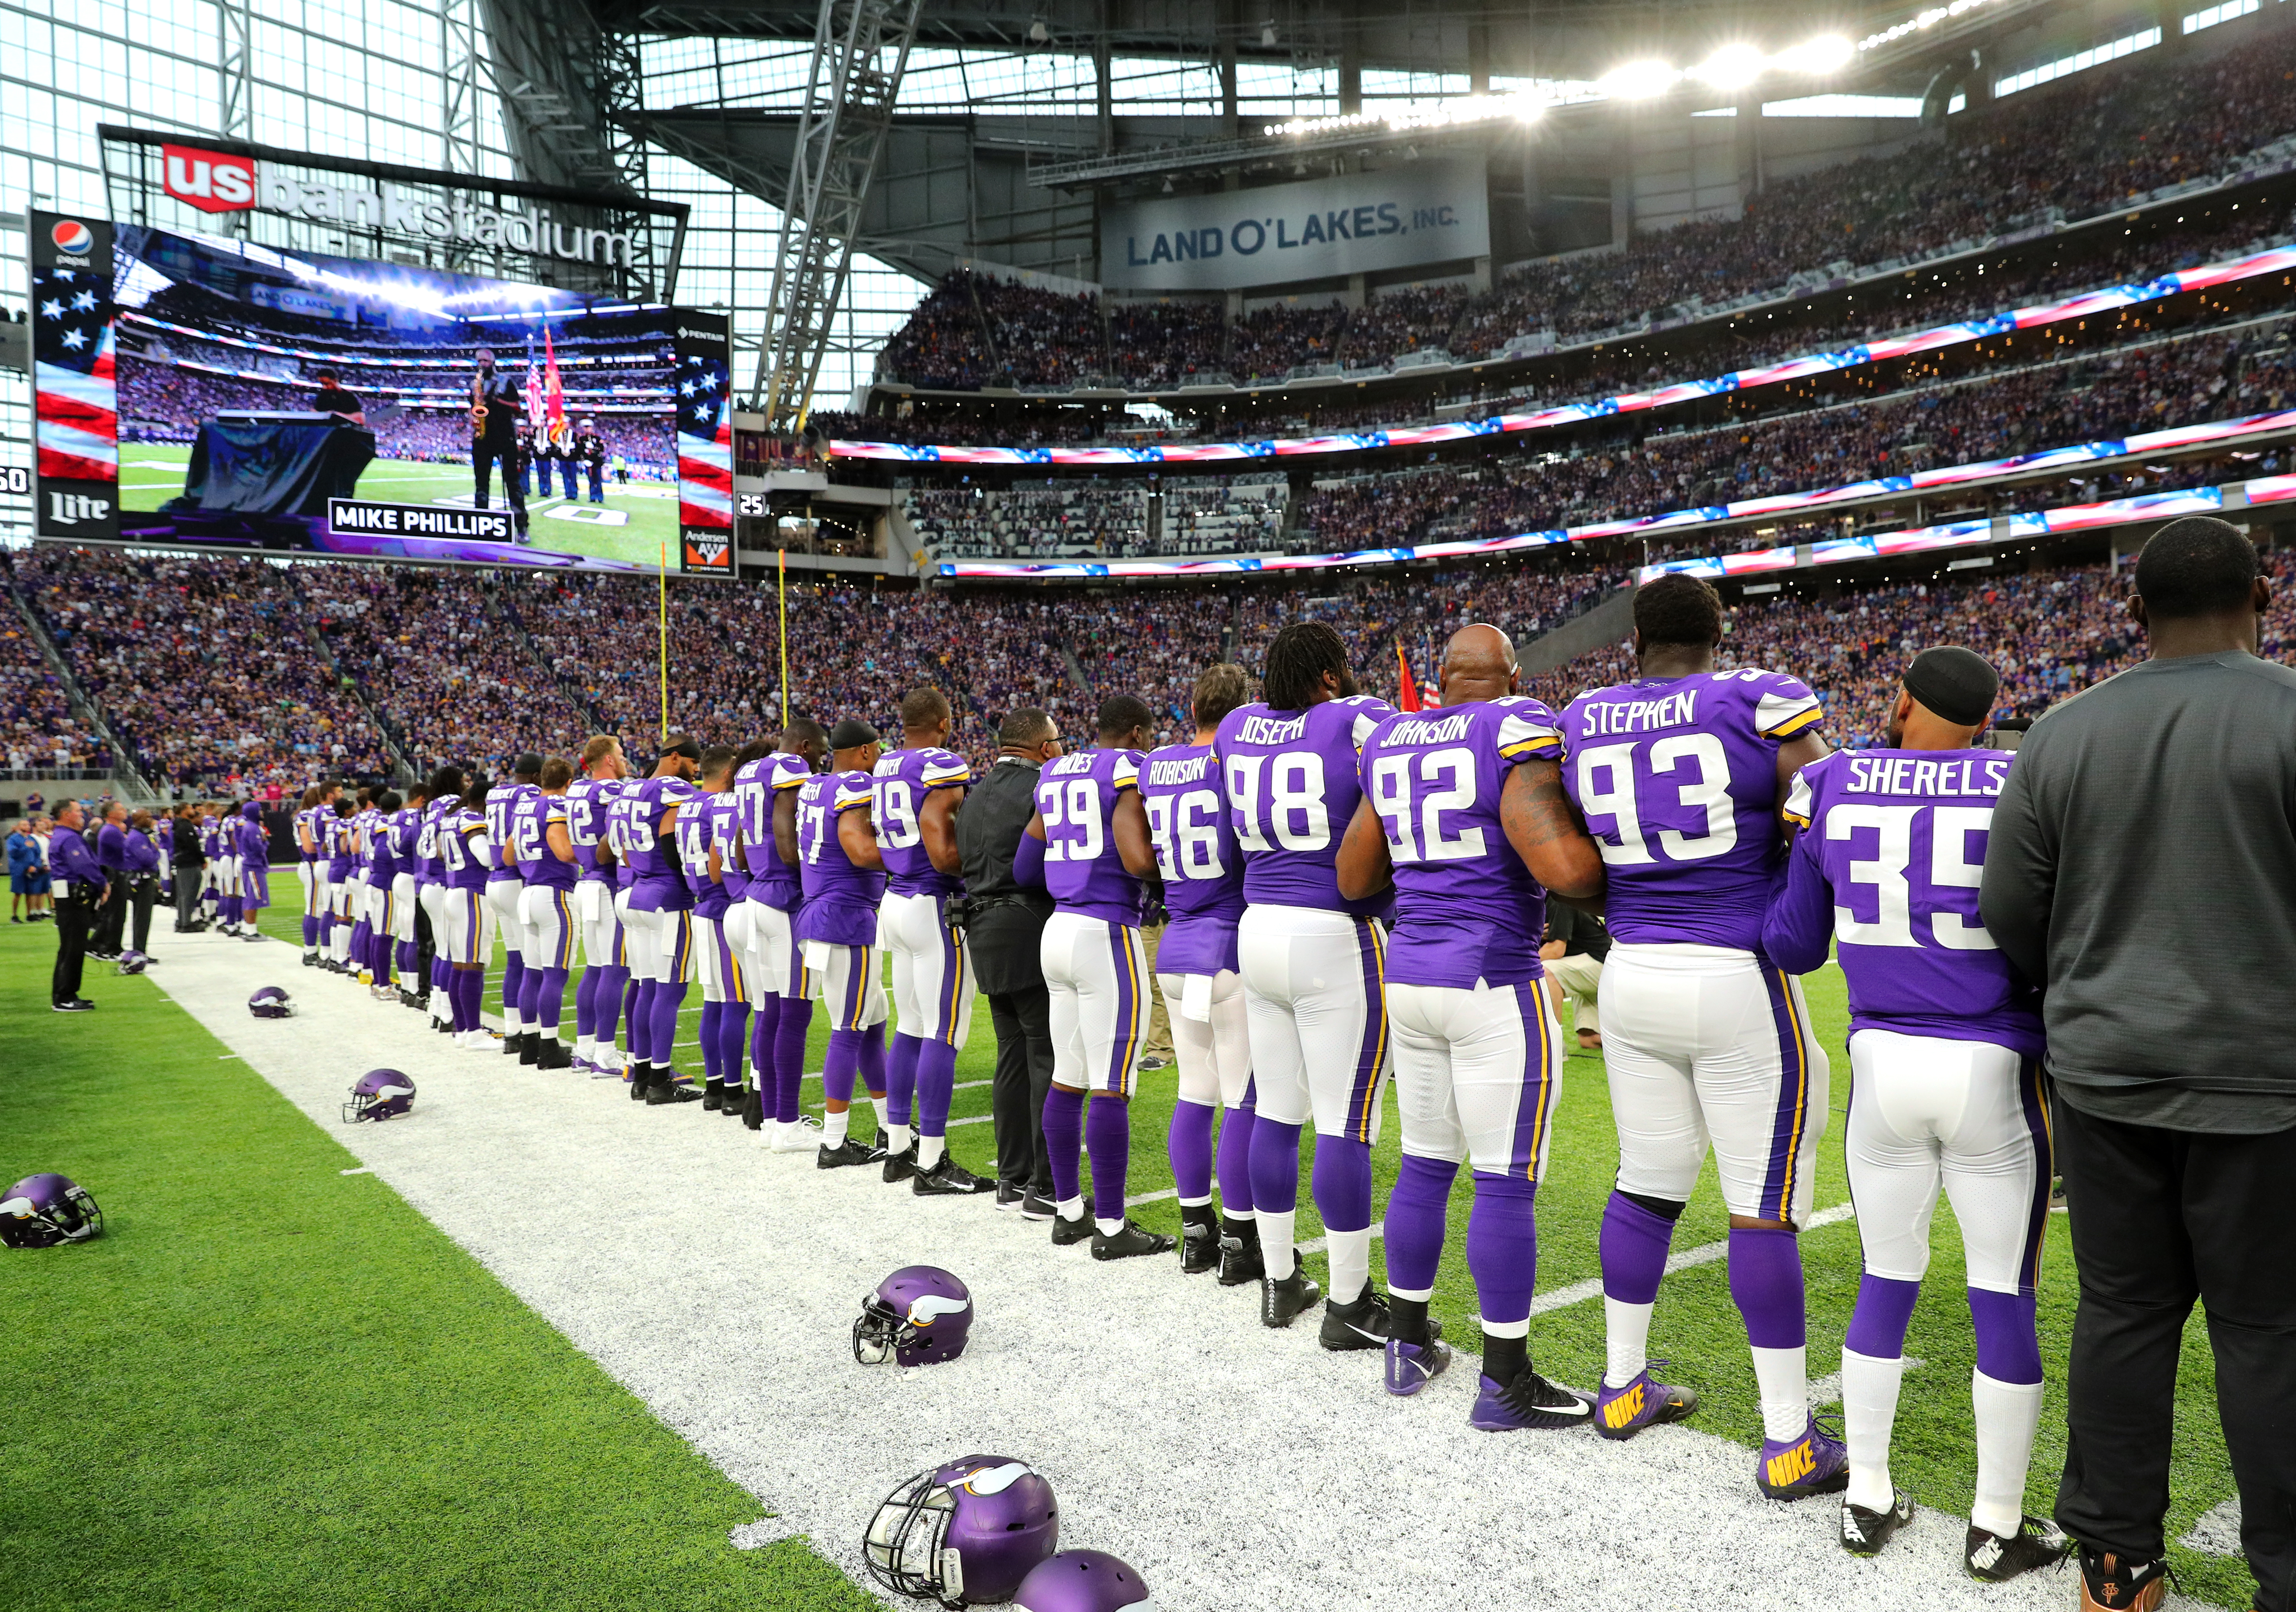 Roger Goodell: NFL wants all players to stand for anthem, won't make them